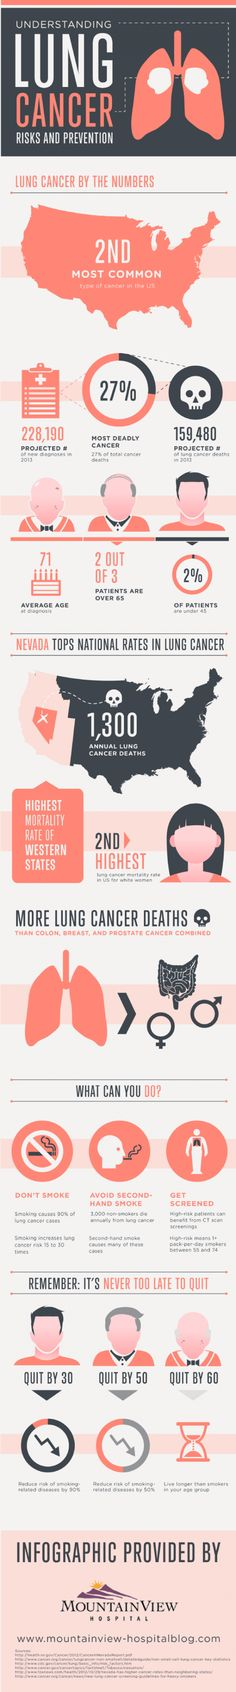 The average age for a lung cancer diagnosis is 71. A high-risk patient smokes at least 1 pack of cigarettes per day and is between 55 and 74. This infographic shows other risk factors for lung cancer.